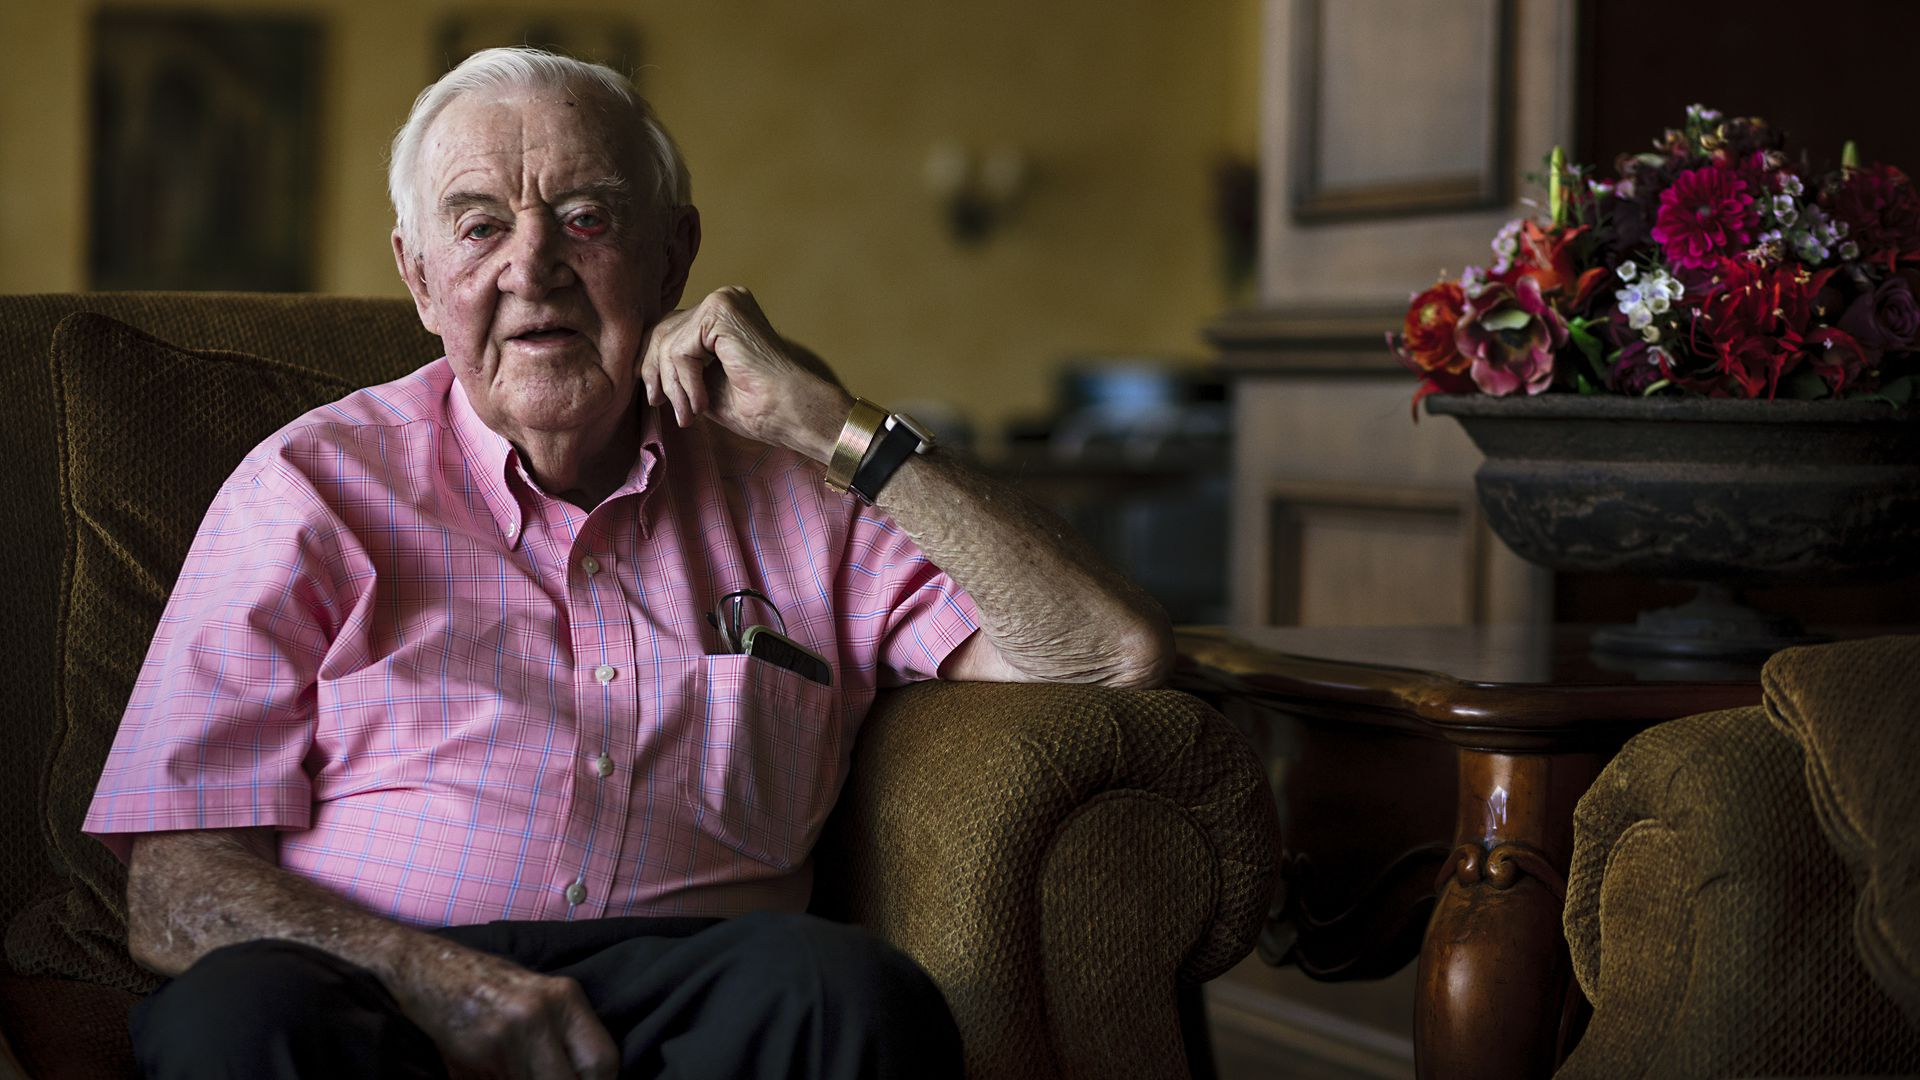 Former Associate Justice of the Supreme Court of the United States John Paul Stevens, 99, sits for a portrait on Thursday, May 9, 2019 in Fort Lauderdale, FL.